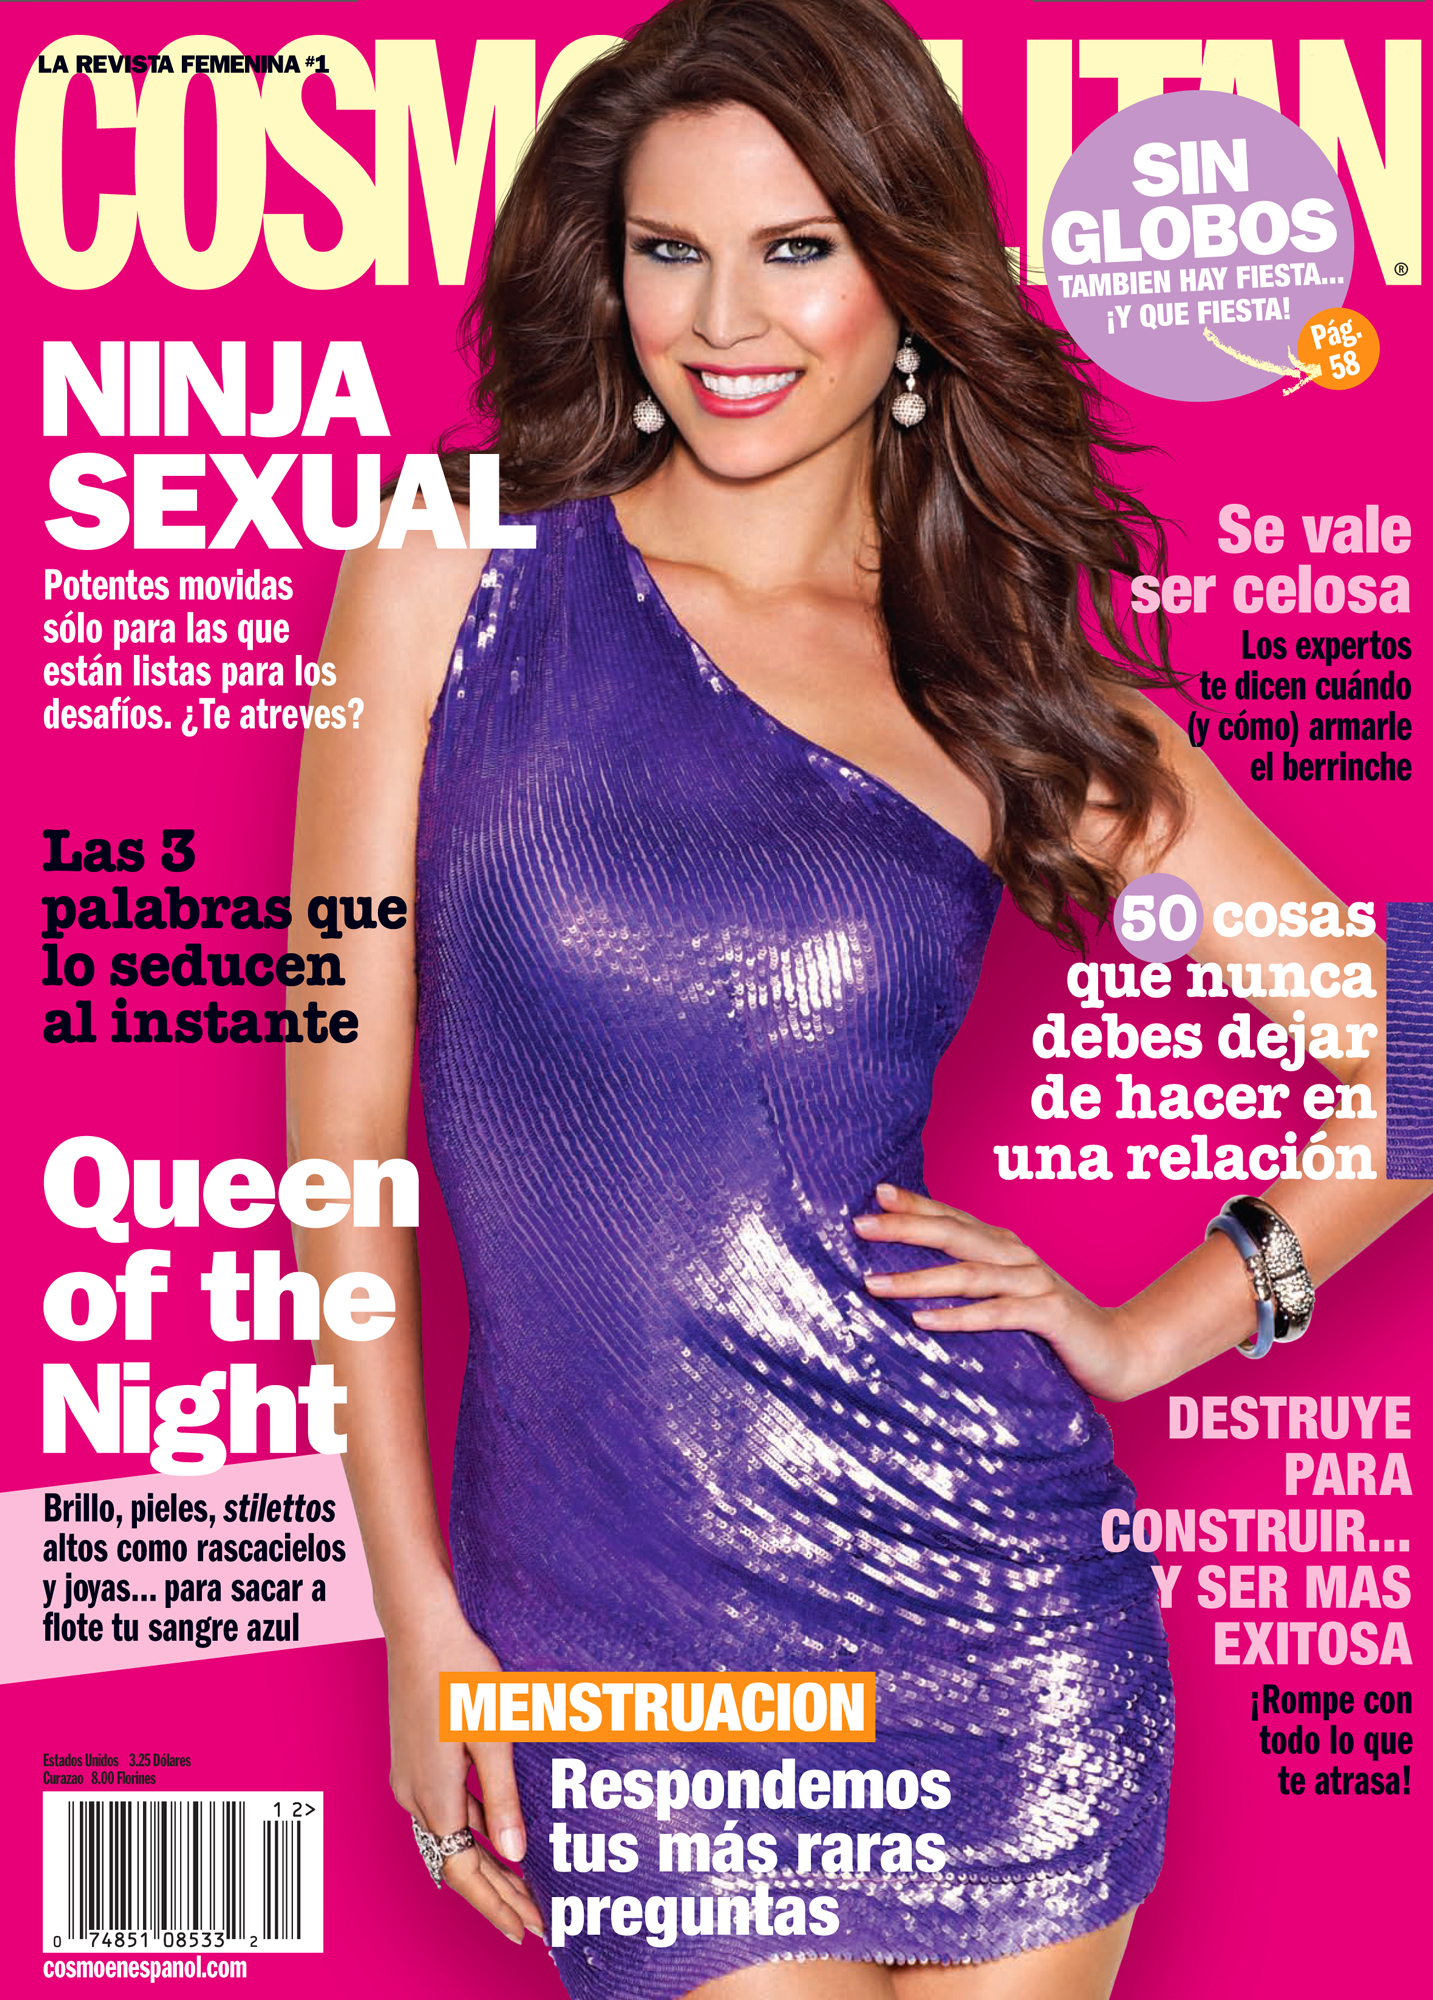 Cosmopolitian-Magazine-Cover,celebrity-Mexico,digital-editing.jpg